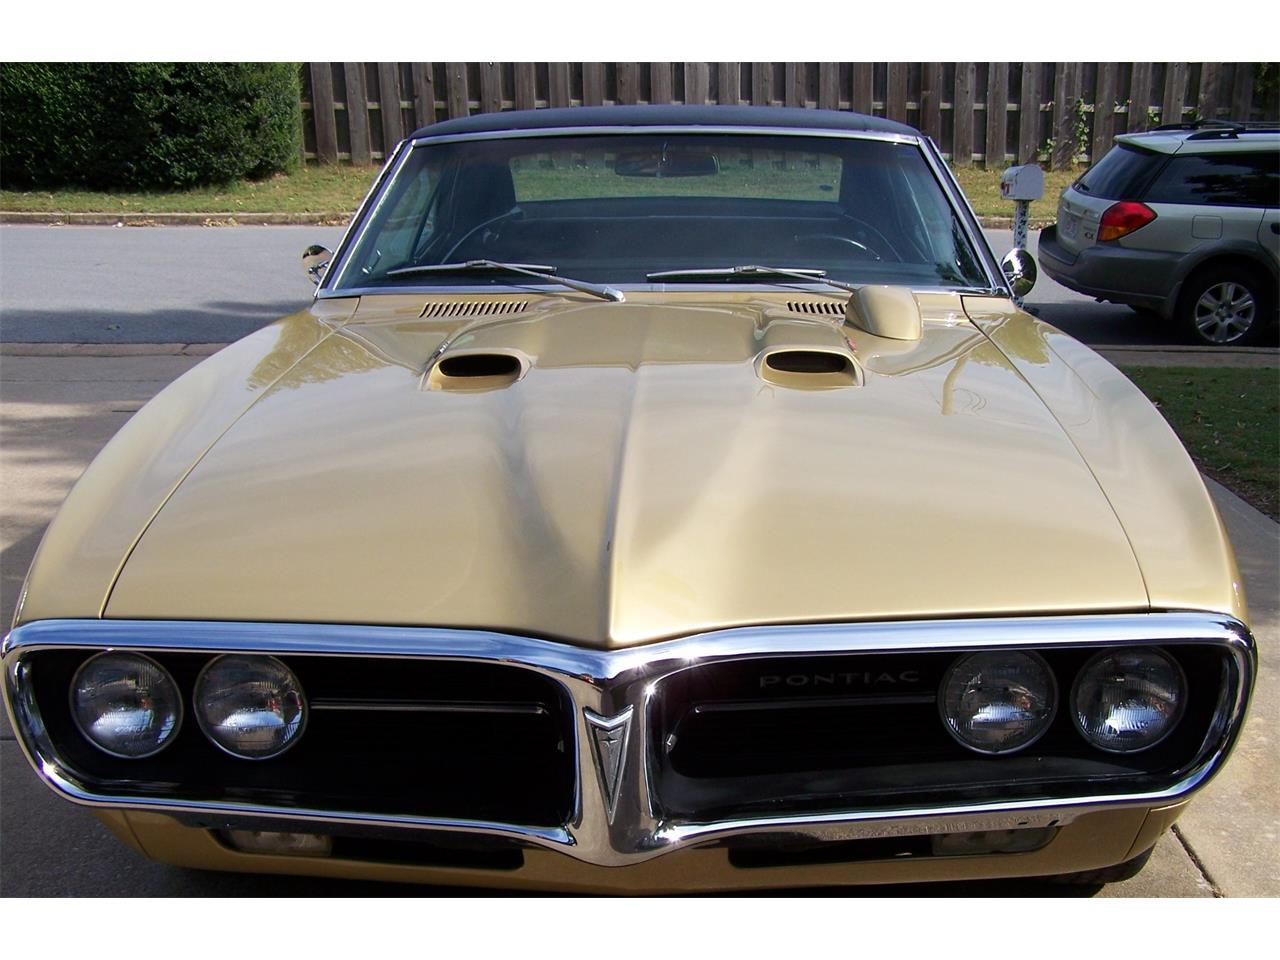 Large Picture of Classic '67 Firebird located in SPRINGDALE Arkansas - $29,995.00 - G9J7